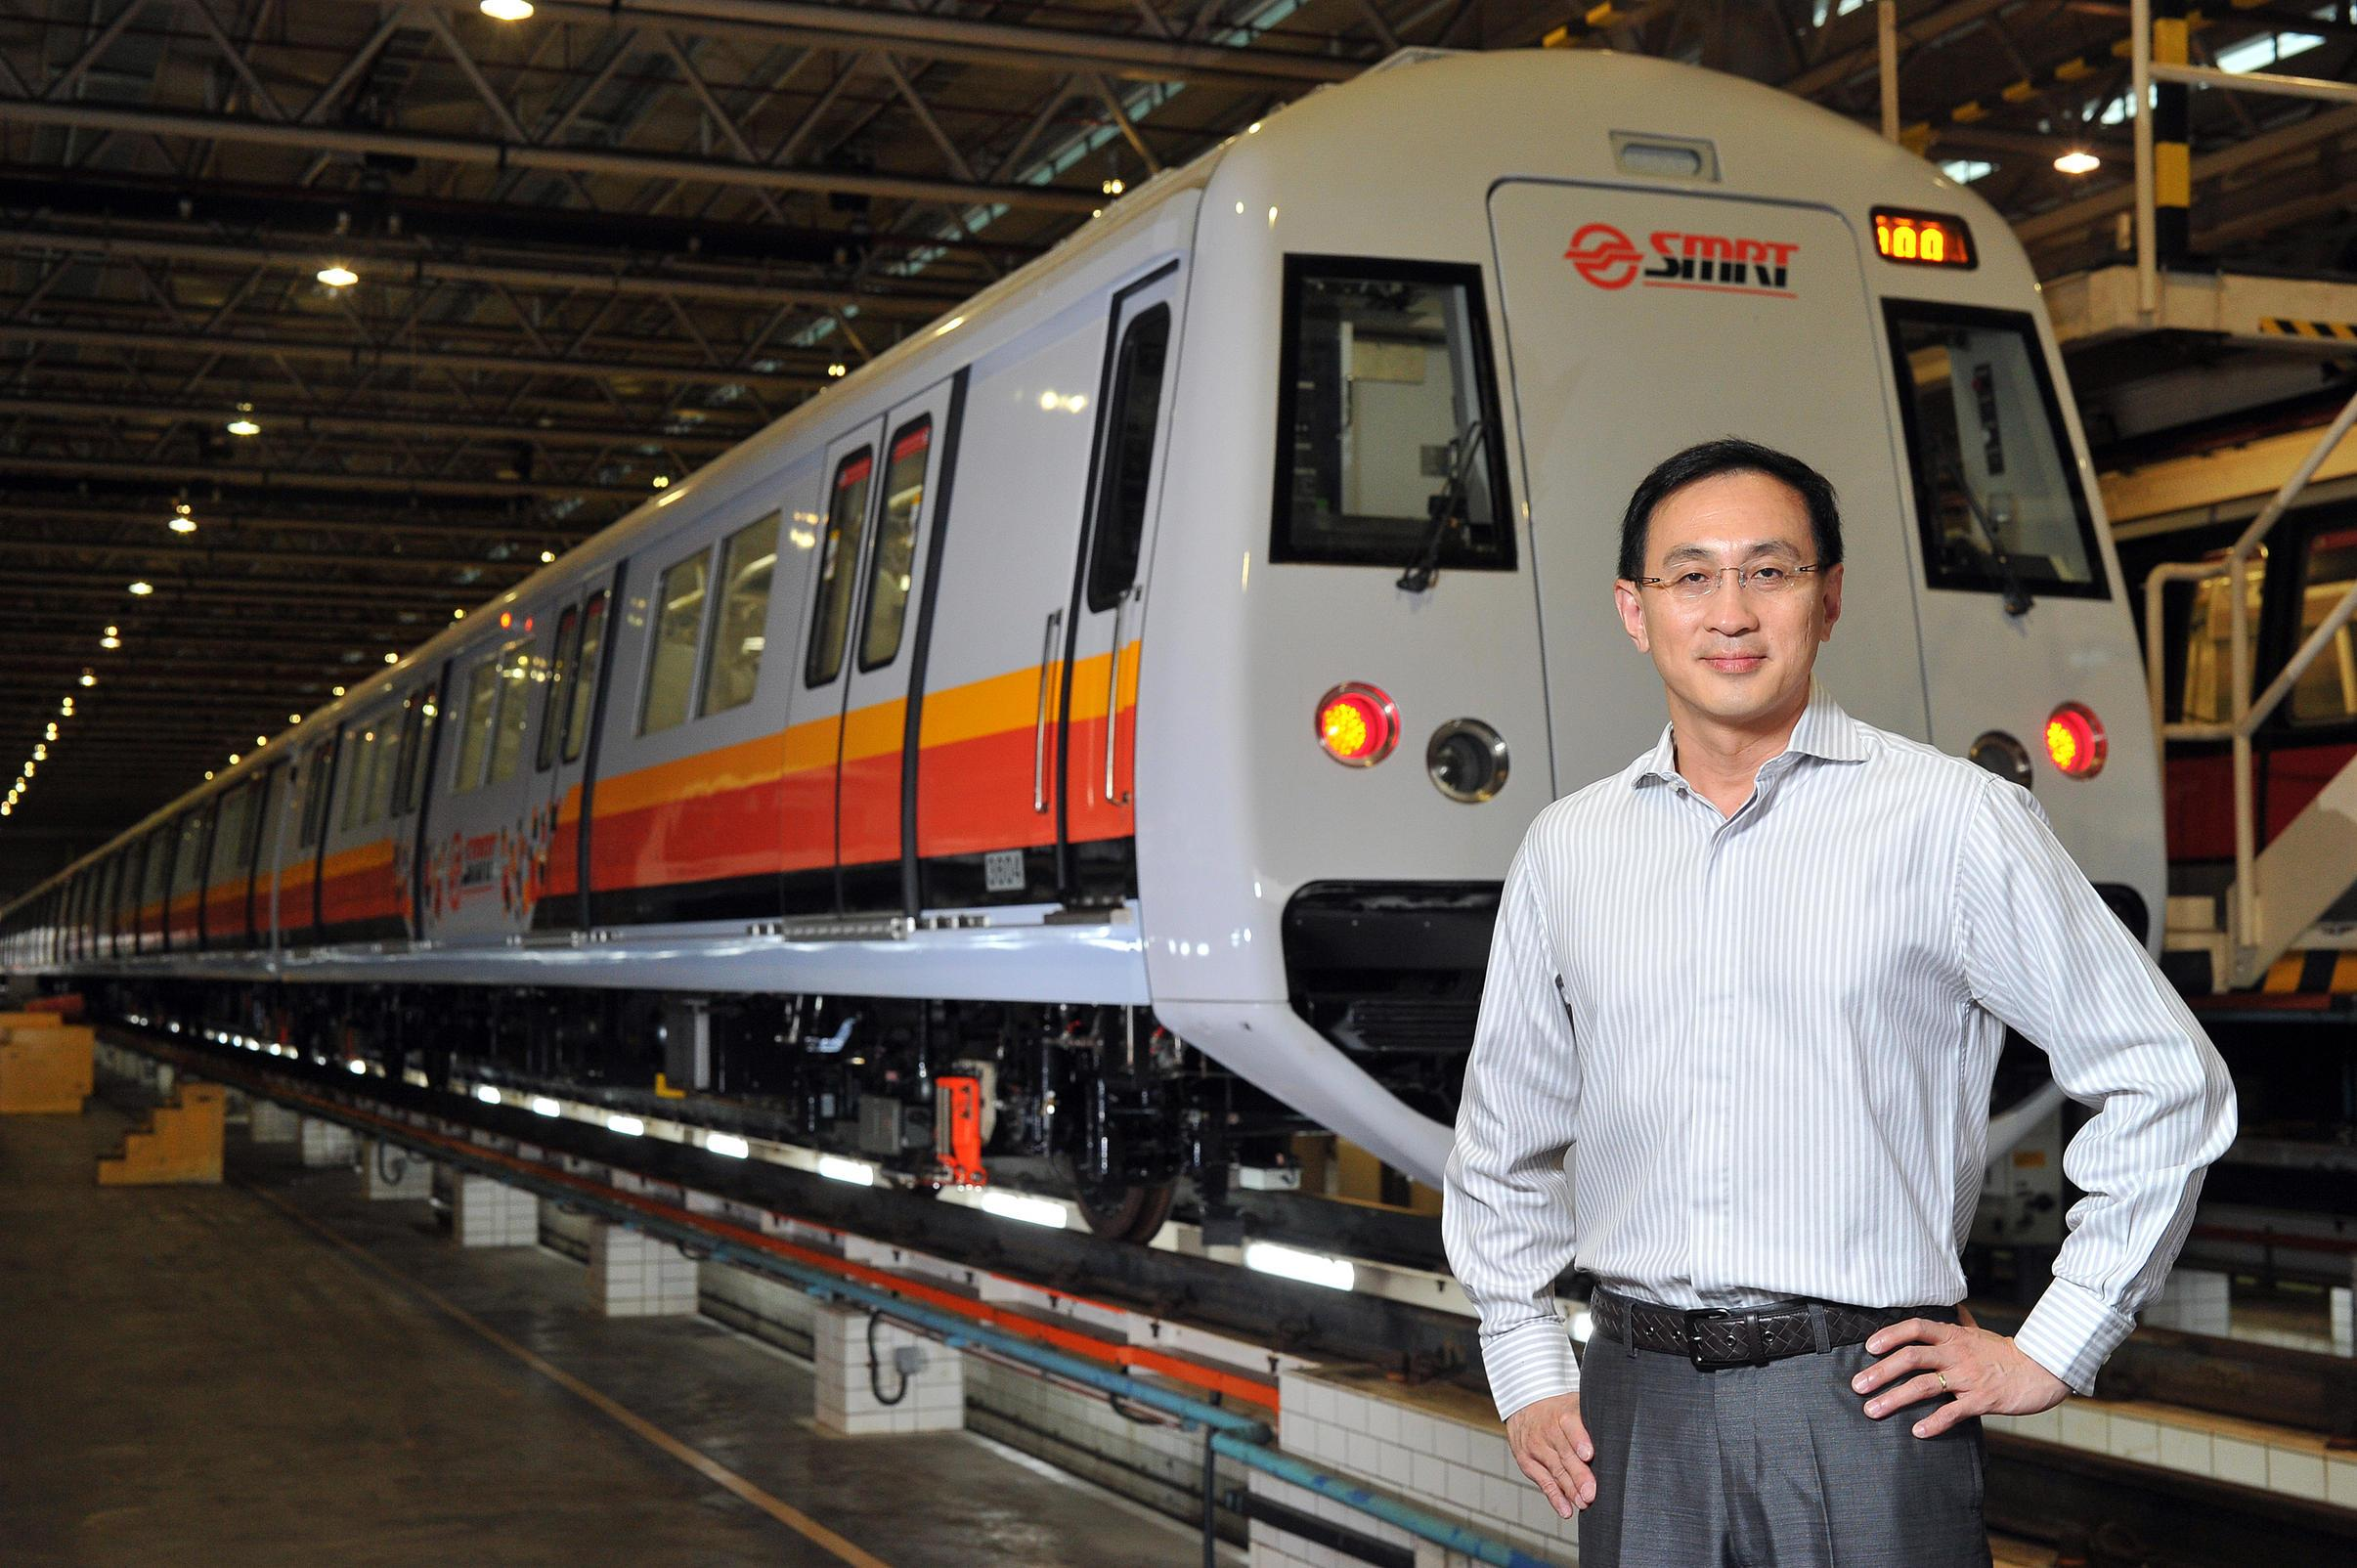 Former SMRT CEO Desmond Kuek sets up company to give leadership training - Alvinology